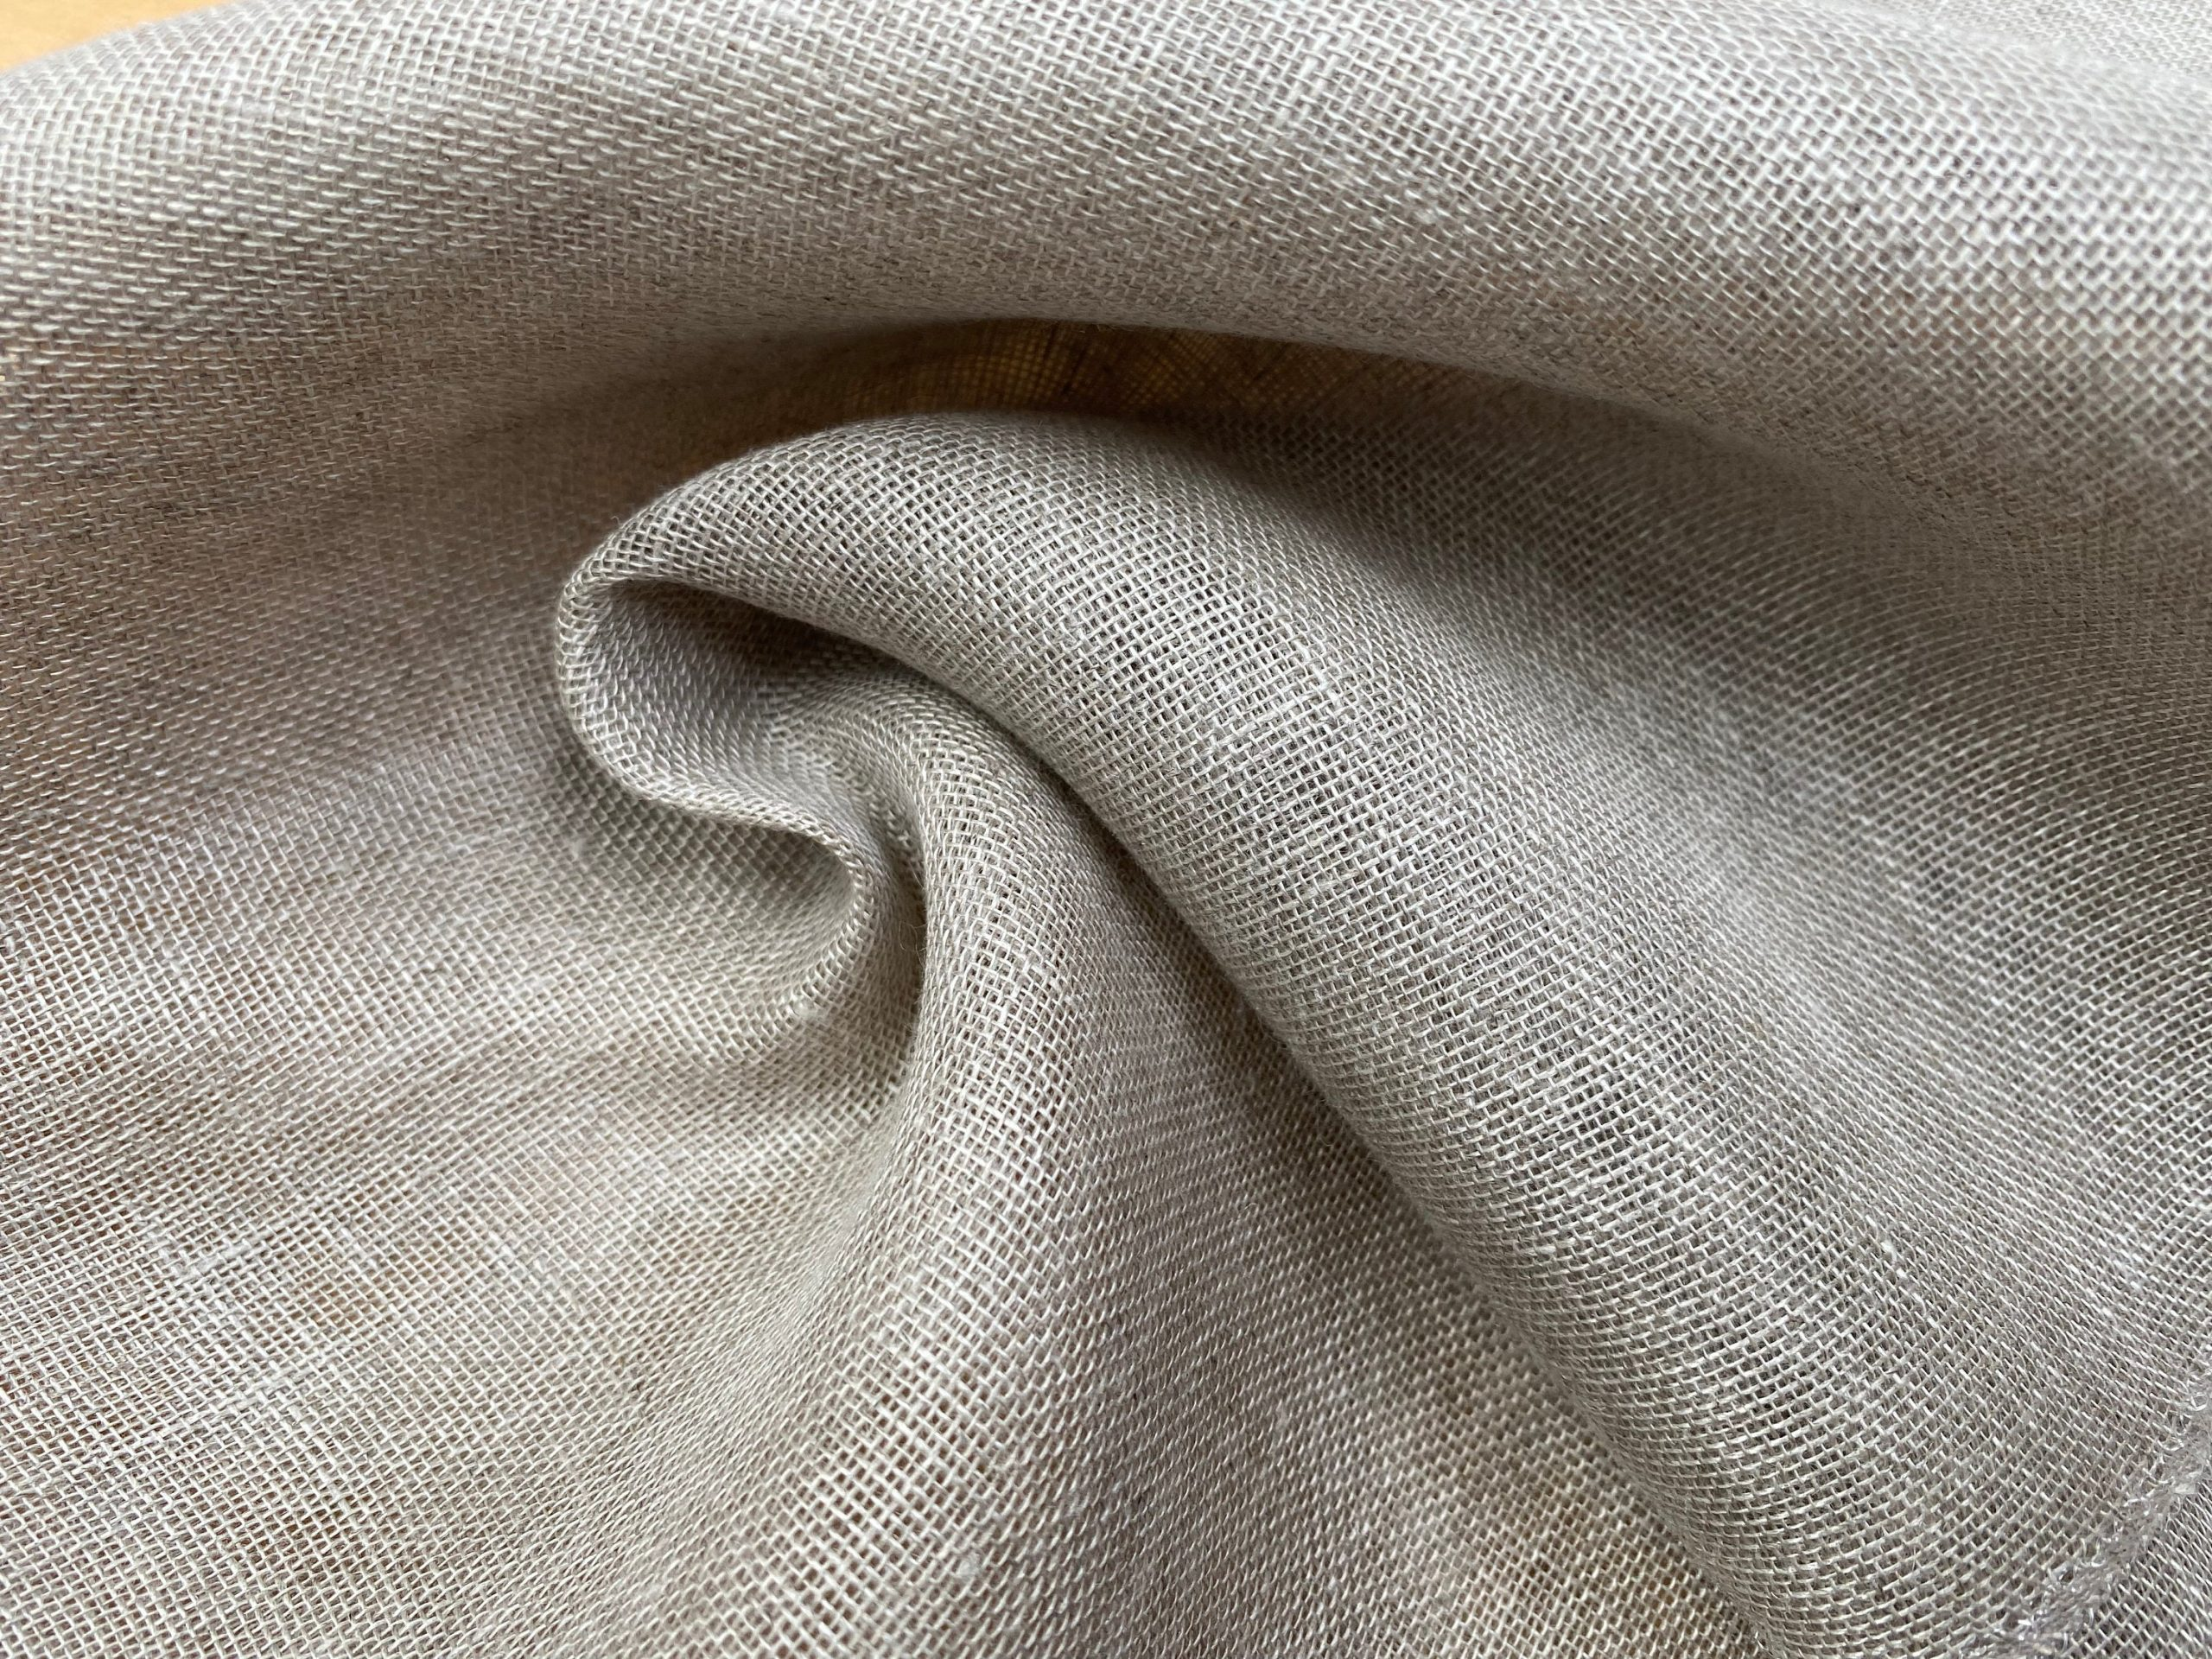 Extra Wide 100% Linen Fabric – Soft Linen Material for Home Decor, Curtains, Clothes – 118″/ 300cm wide – Plain NATURAL